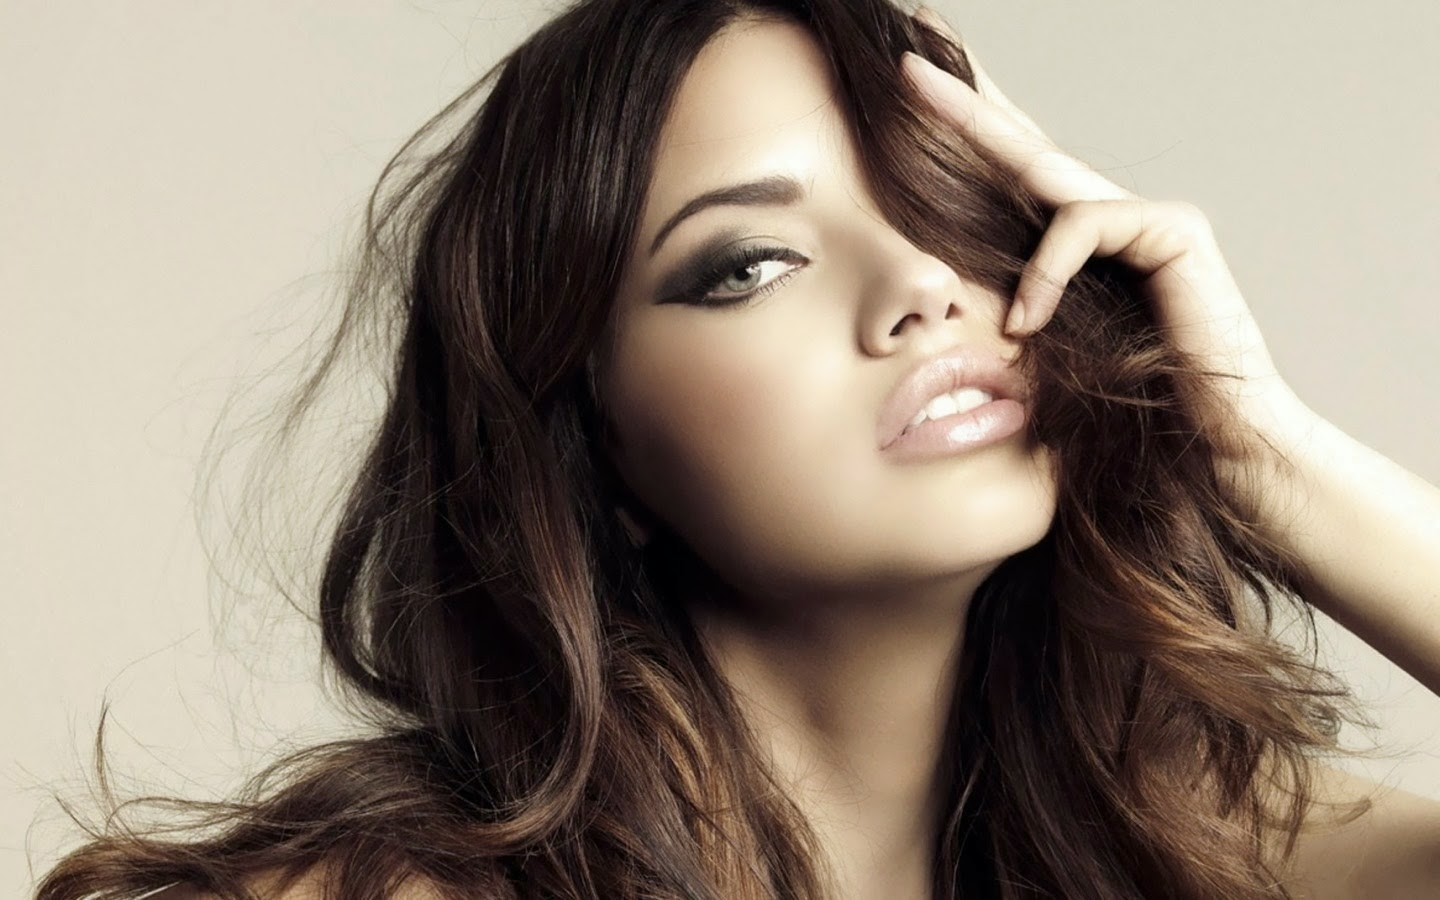 Beautiful Ladies Wallpapers Group - Adriana Lima Face - HD Wallpaper